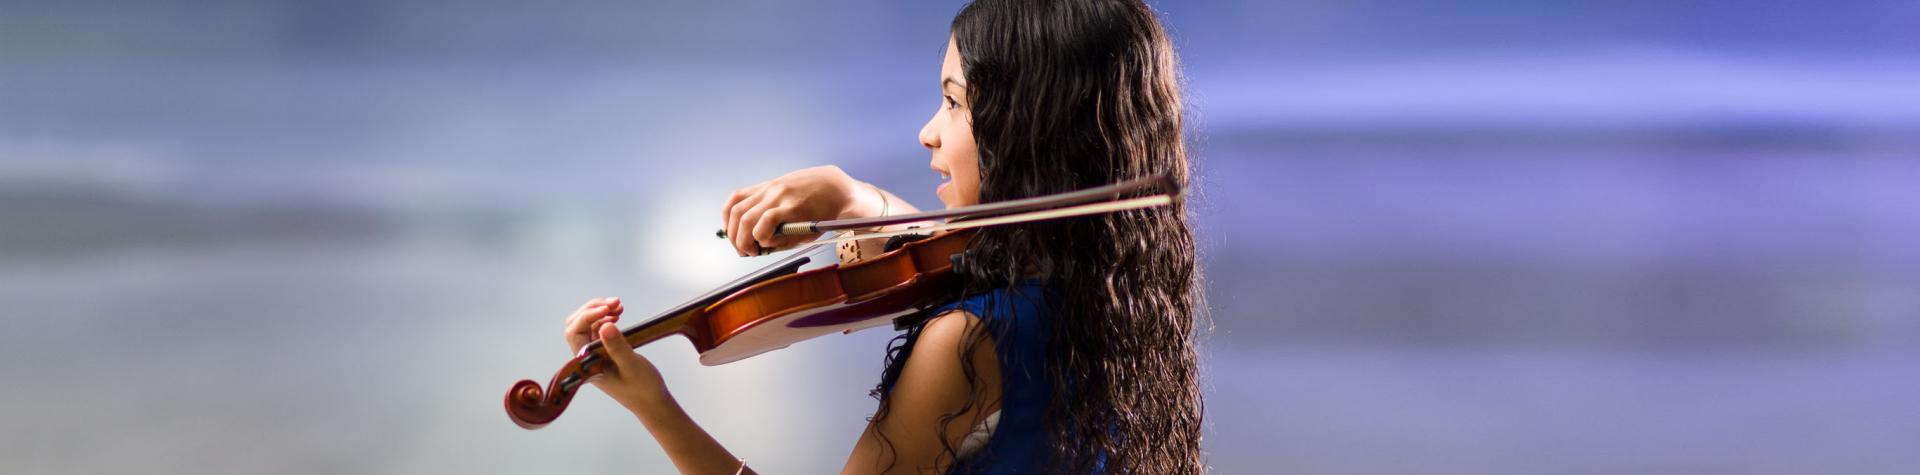 Why Study Music? Girl playing the violin